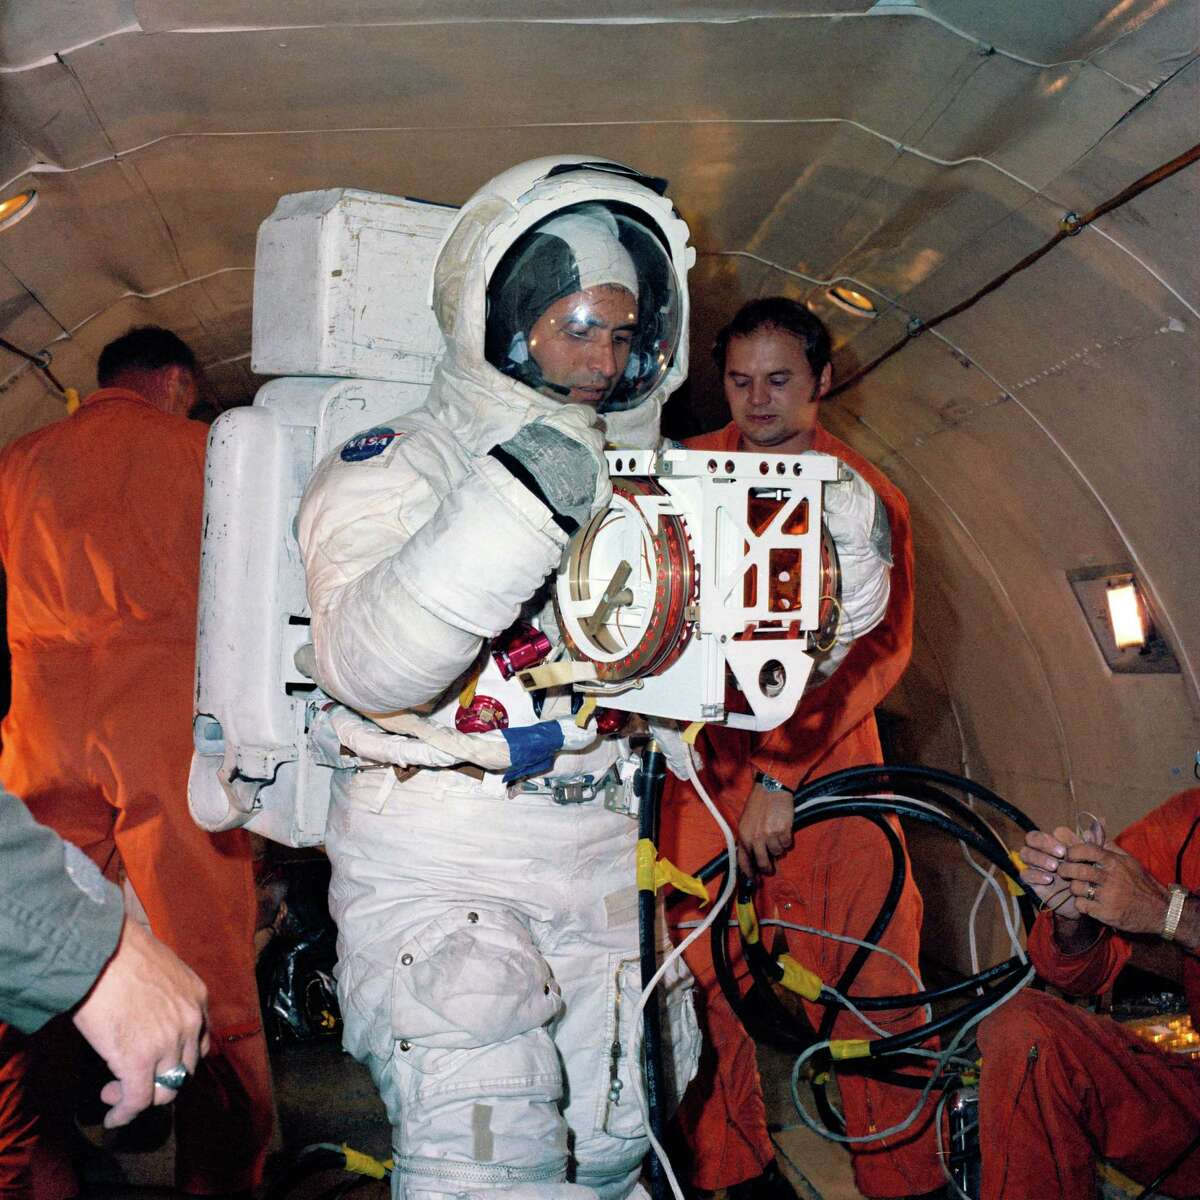 Scientist-astronaut Harrison H. Schmitt, lunar module pilot of the Apollo 17 lunar landing mission, is shown in this September 1972 photo in a simulation training exercise in low-gravity conditions aboard U. S. Air Force KC-135 aircraft.